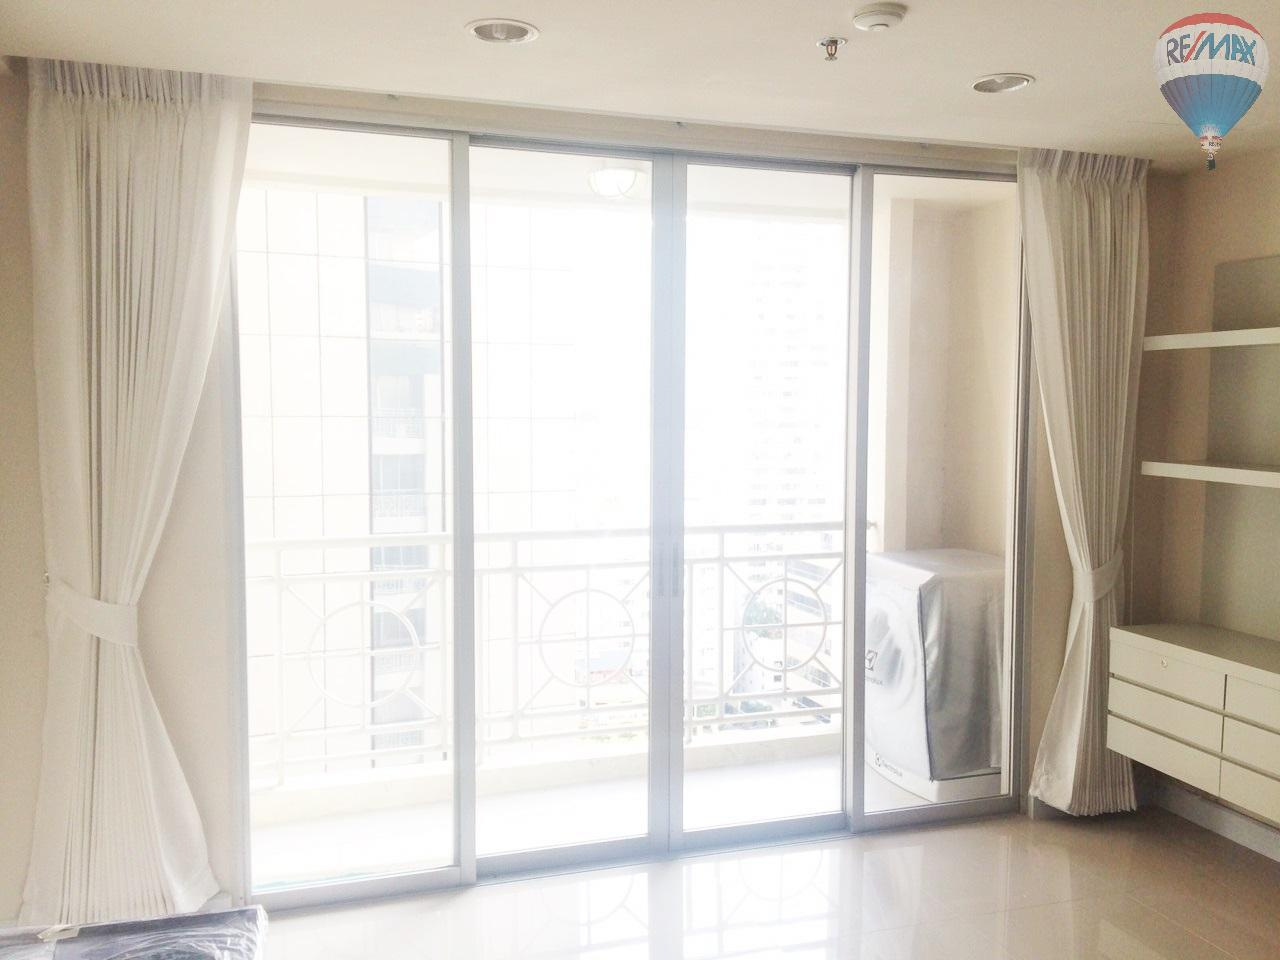 RE/MAX Properties Agency's 2 Bedroom 86 sq.m. for Rent at Asoke Place 12